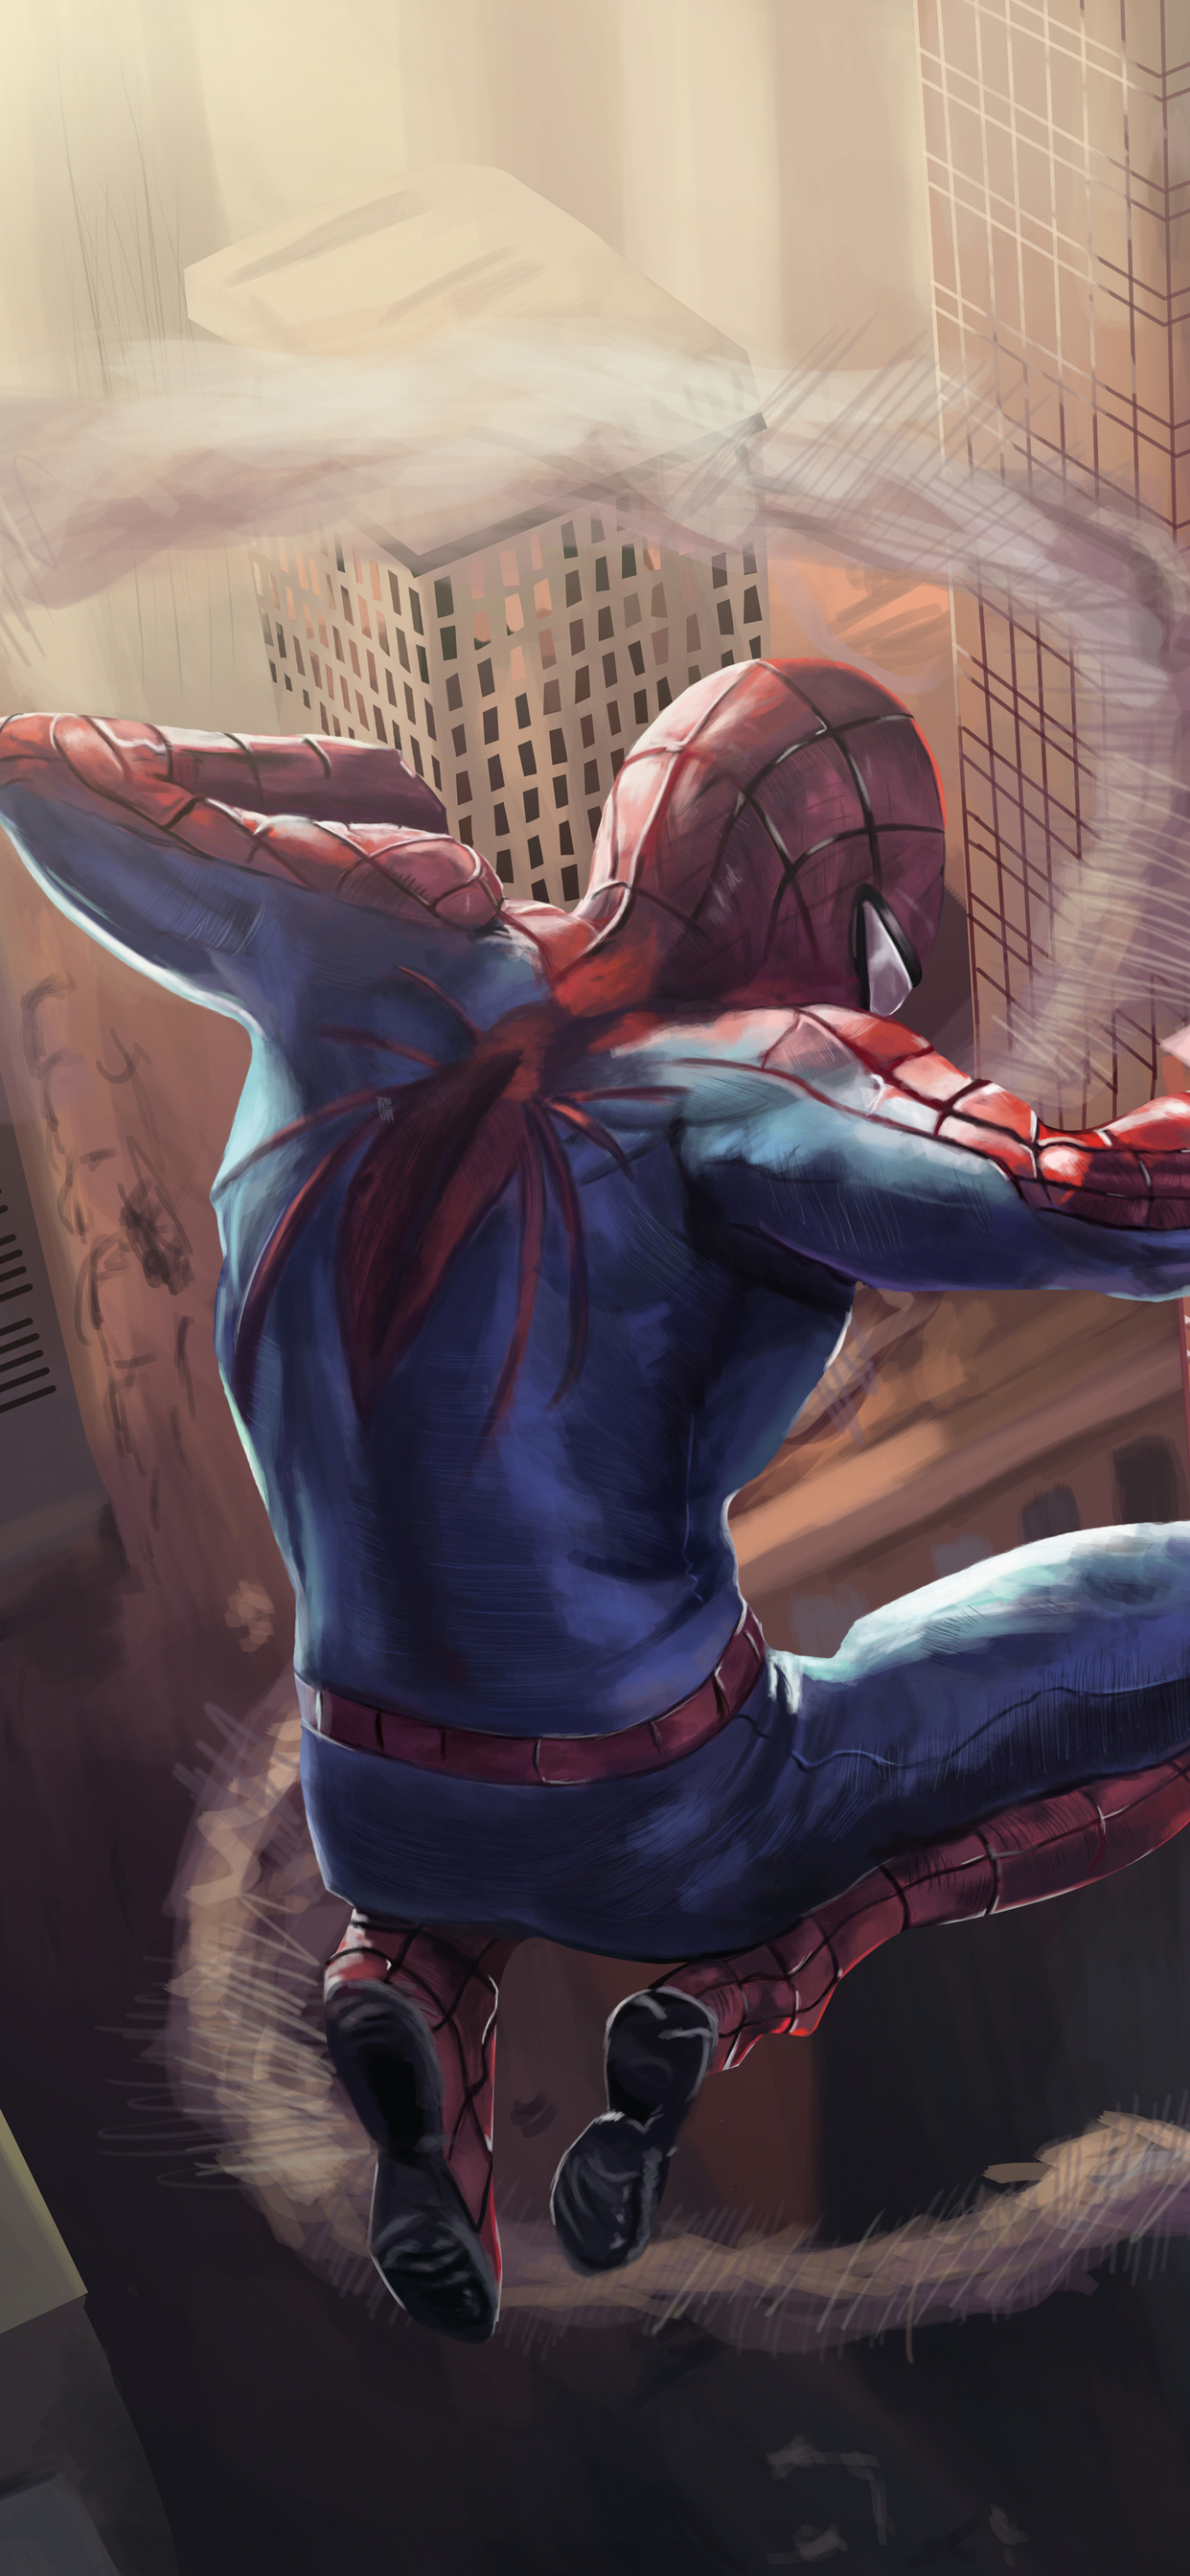 spiderman-fan-art-4k-x8.jpg